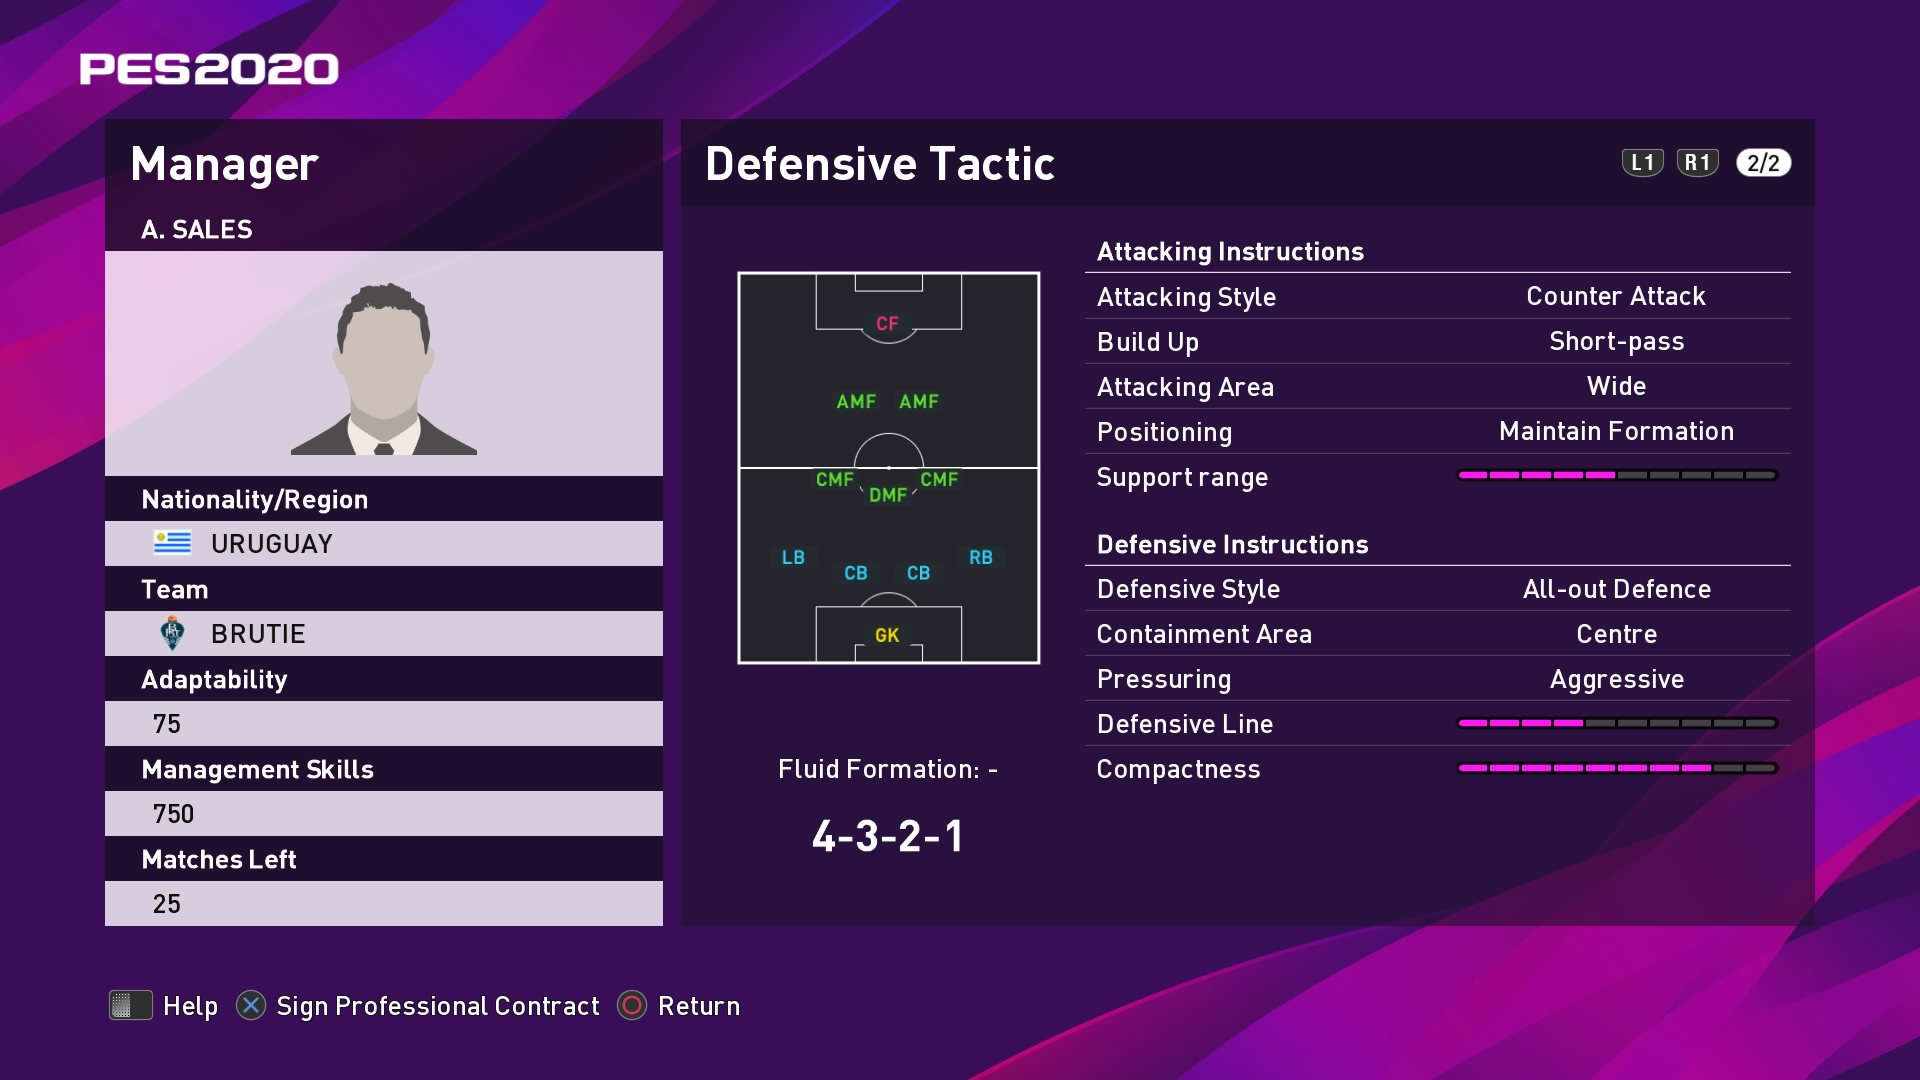 A. Sales (Diego López) Defensive Tactic in PES 2020 myClub